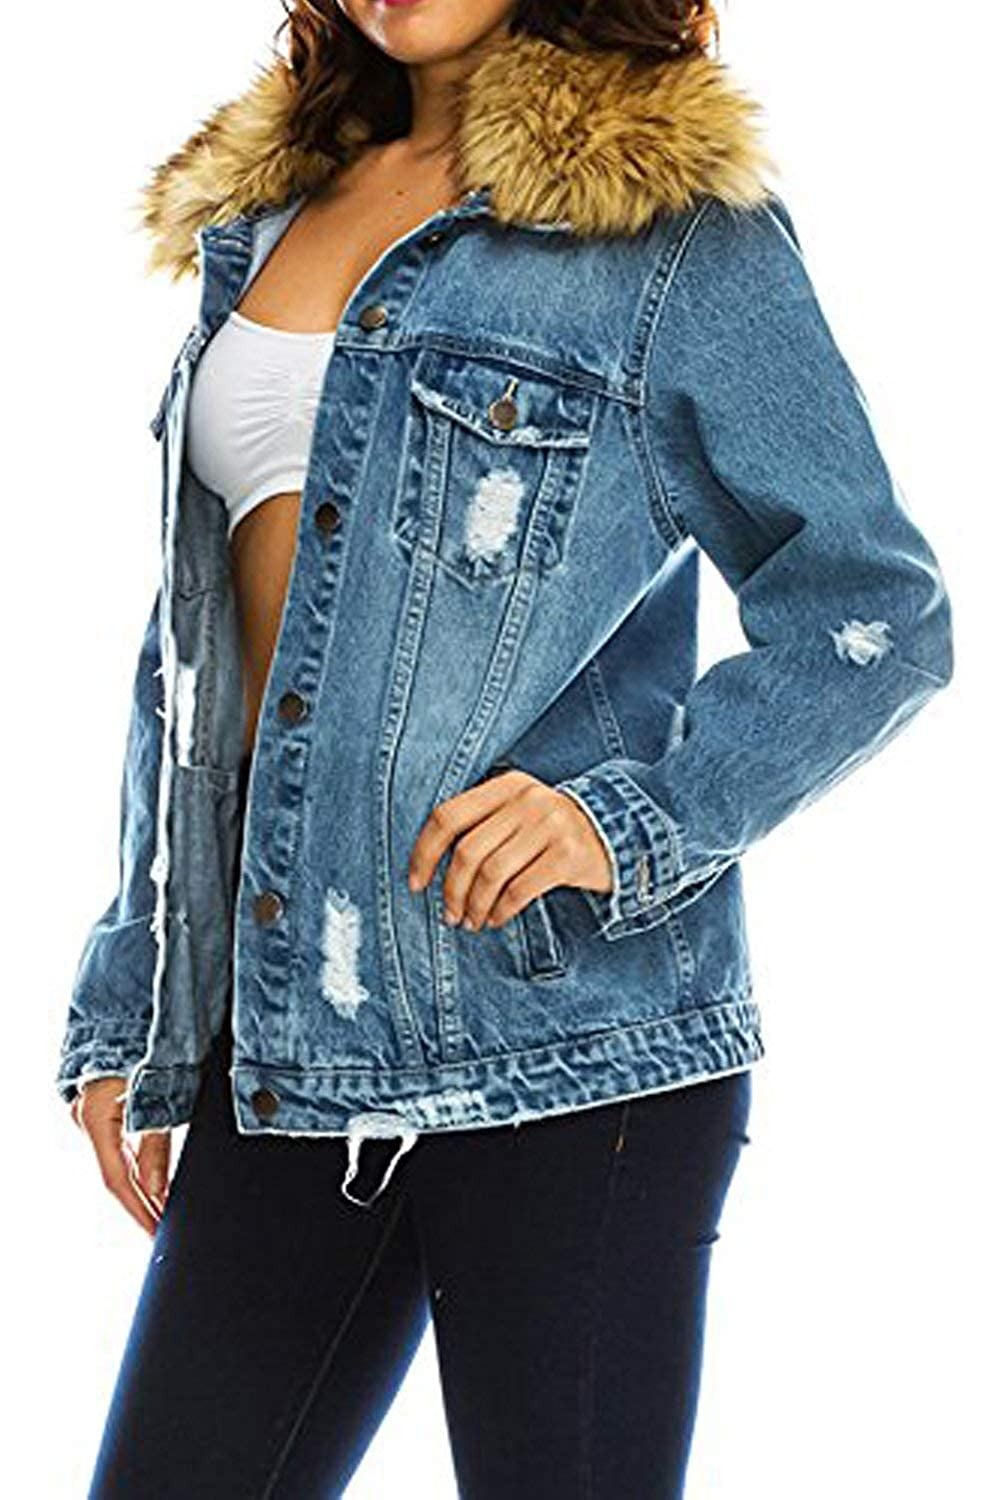 TwiinSisters Womens Boyfriend Destroyed Front Back Denim Jacket Size Small to 3X